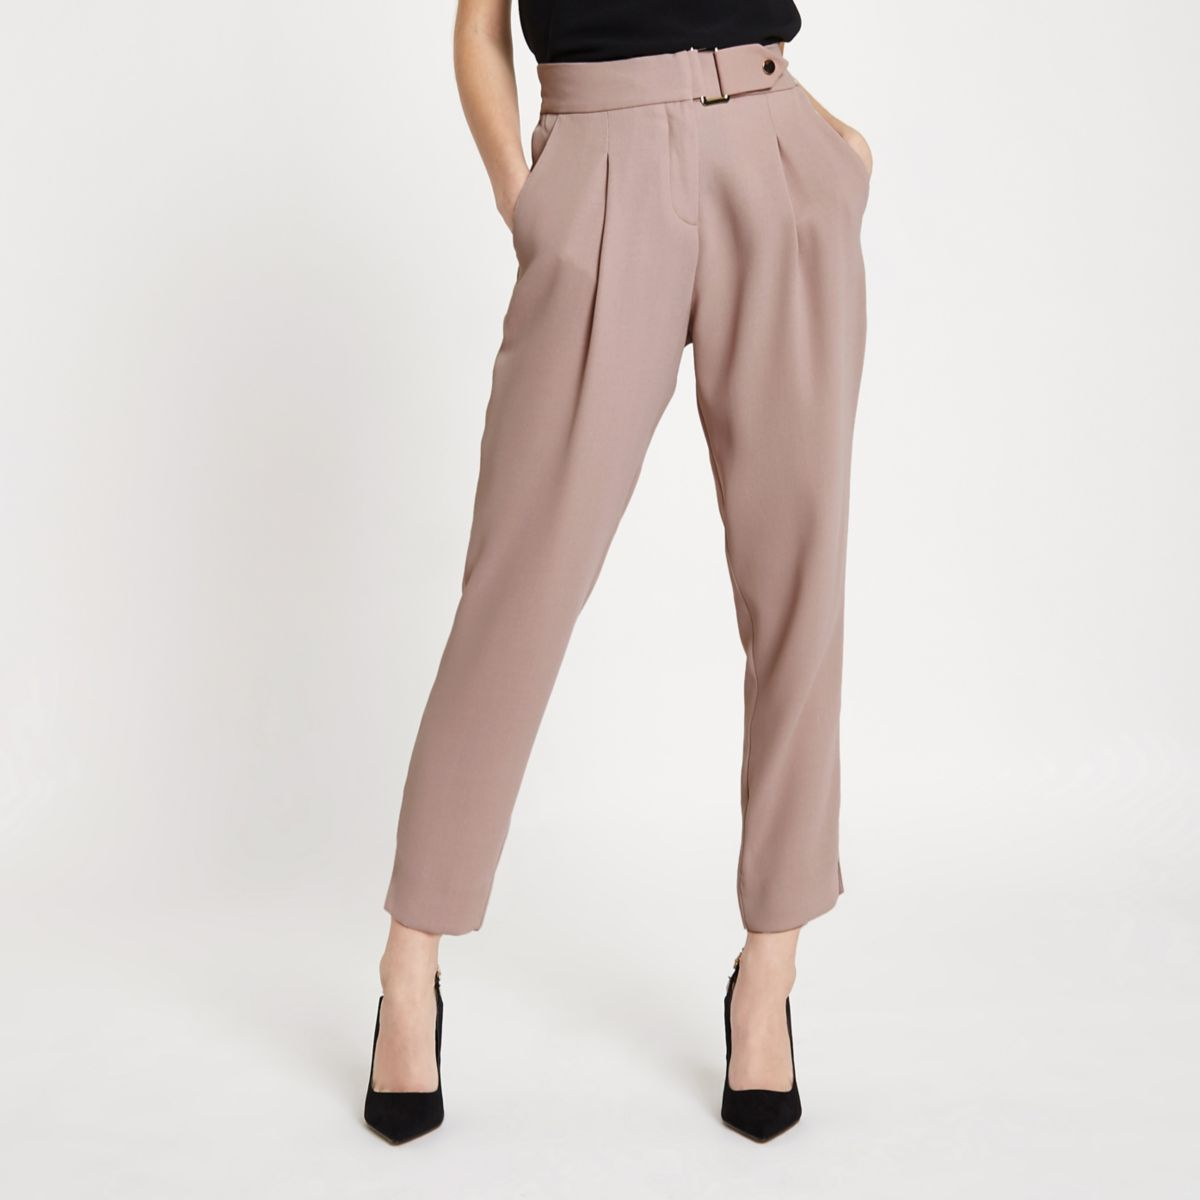 Petite blush pink belted tapered pants